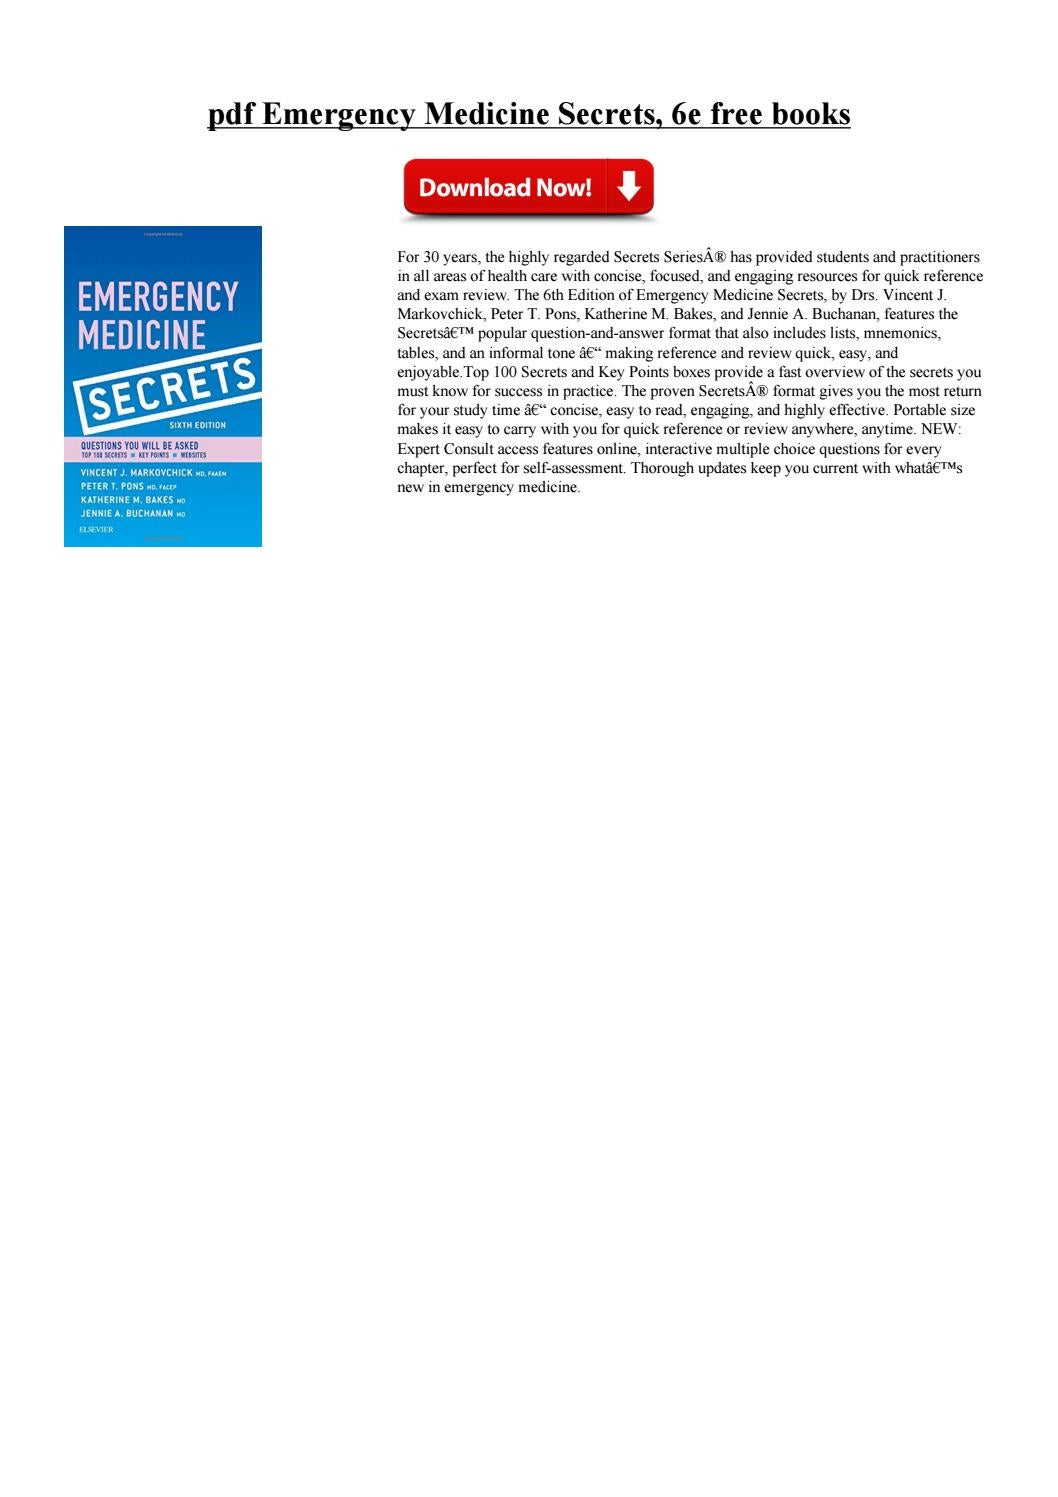 Secrets pdf medicine emergency